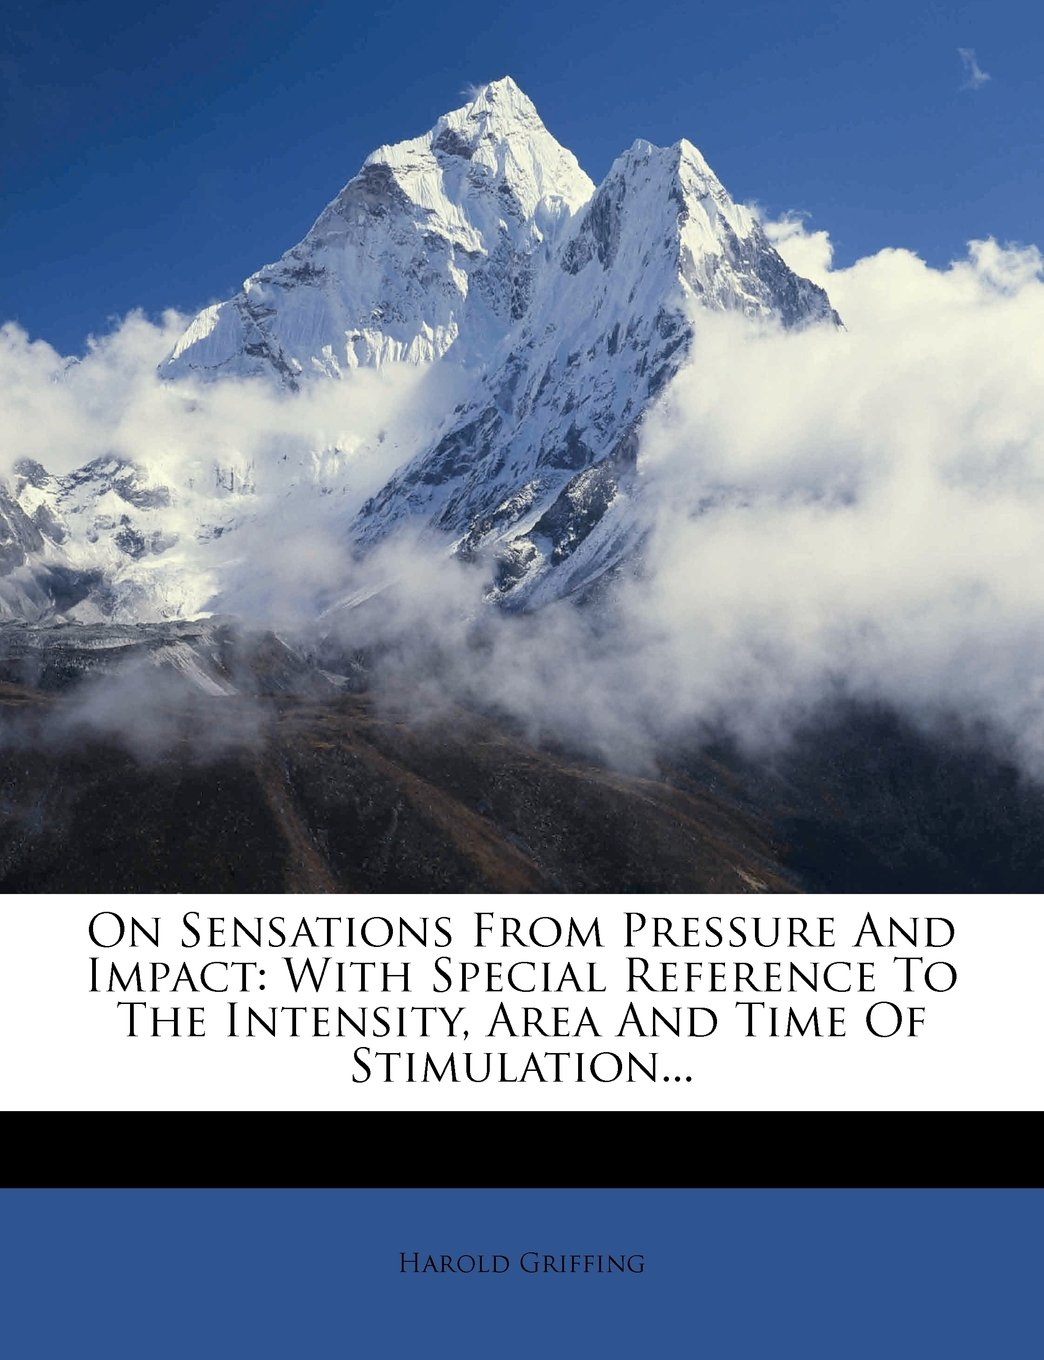 On Sensations from Pressure and Impact: With Special Reference to the Intensity, Area and Time of Stimulation... pdf epub